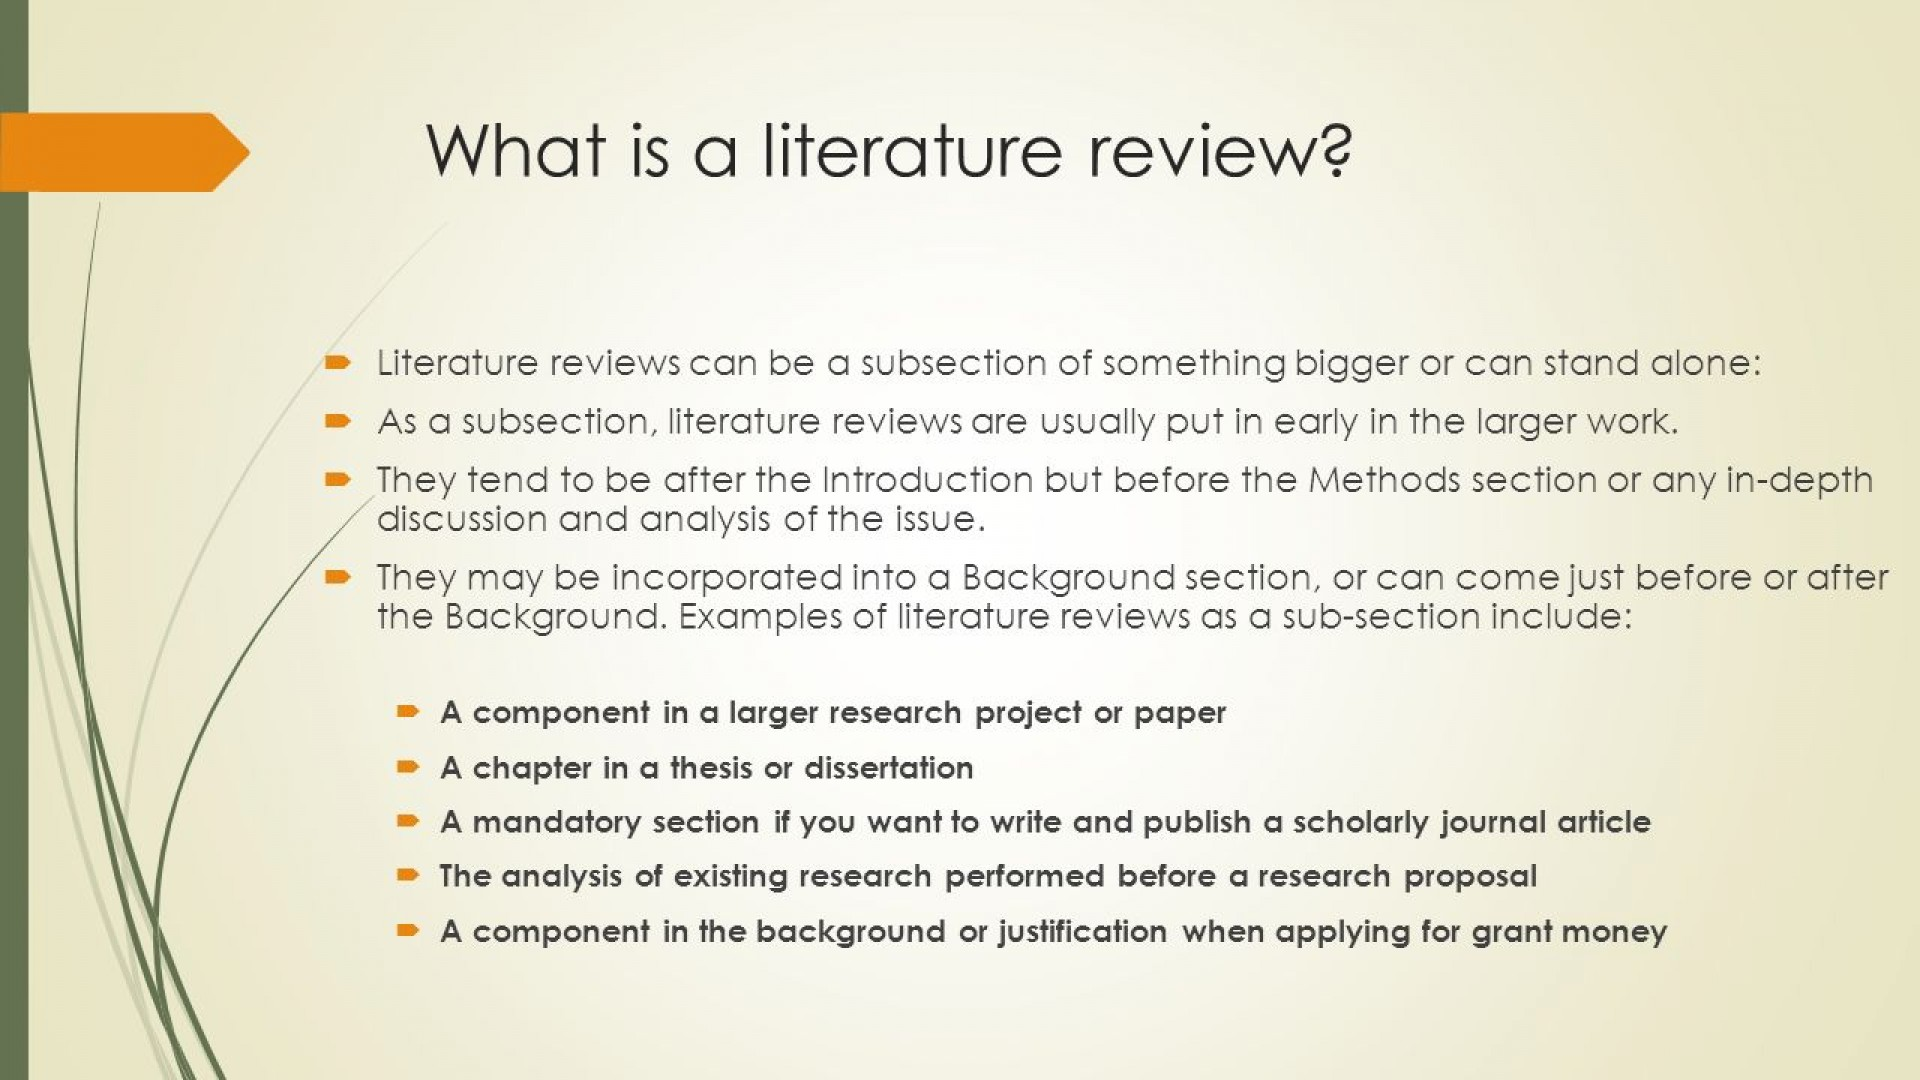 005 Slide 3 Define Literature Review In Research Remarkable Paper What Is Pdf Definition Of 1920